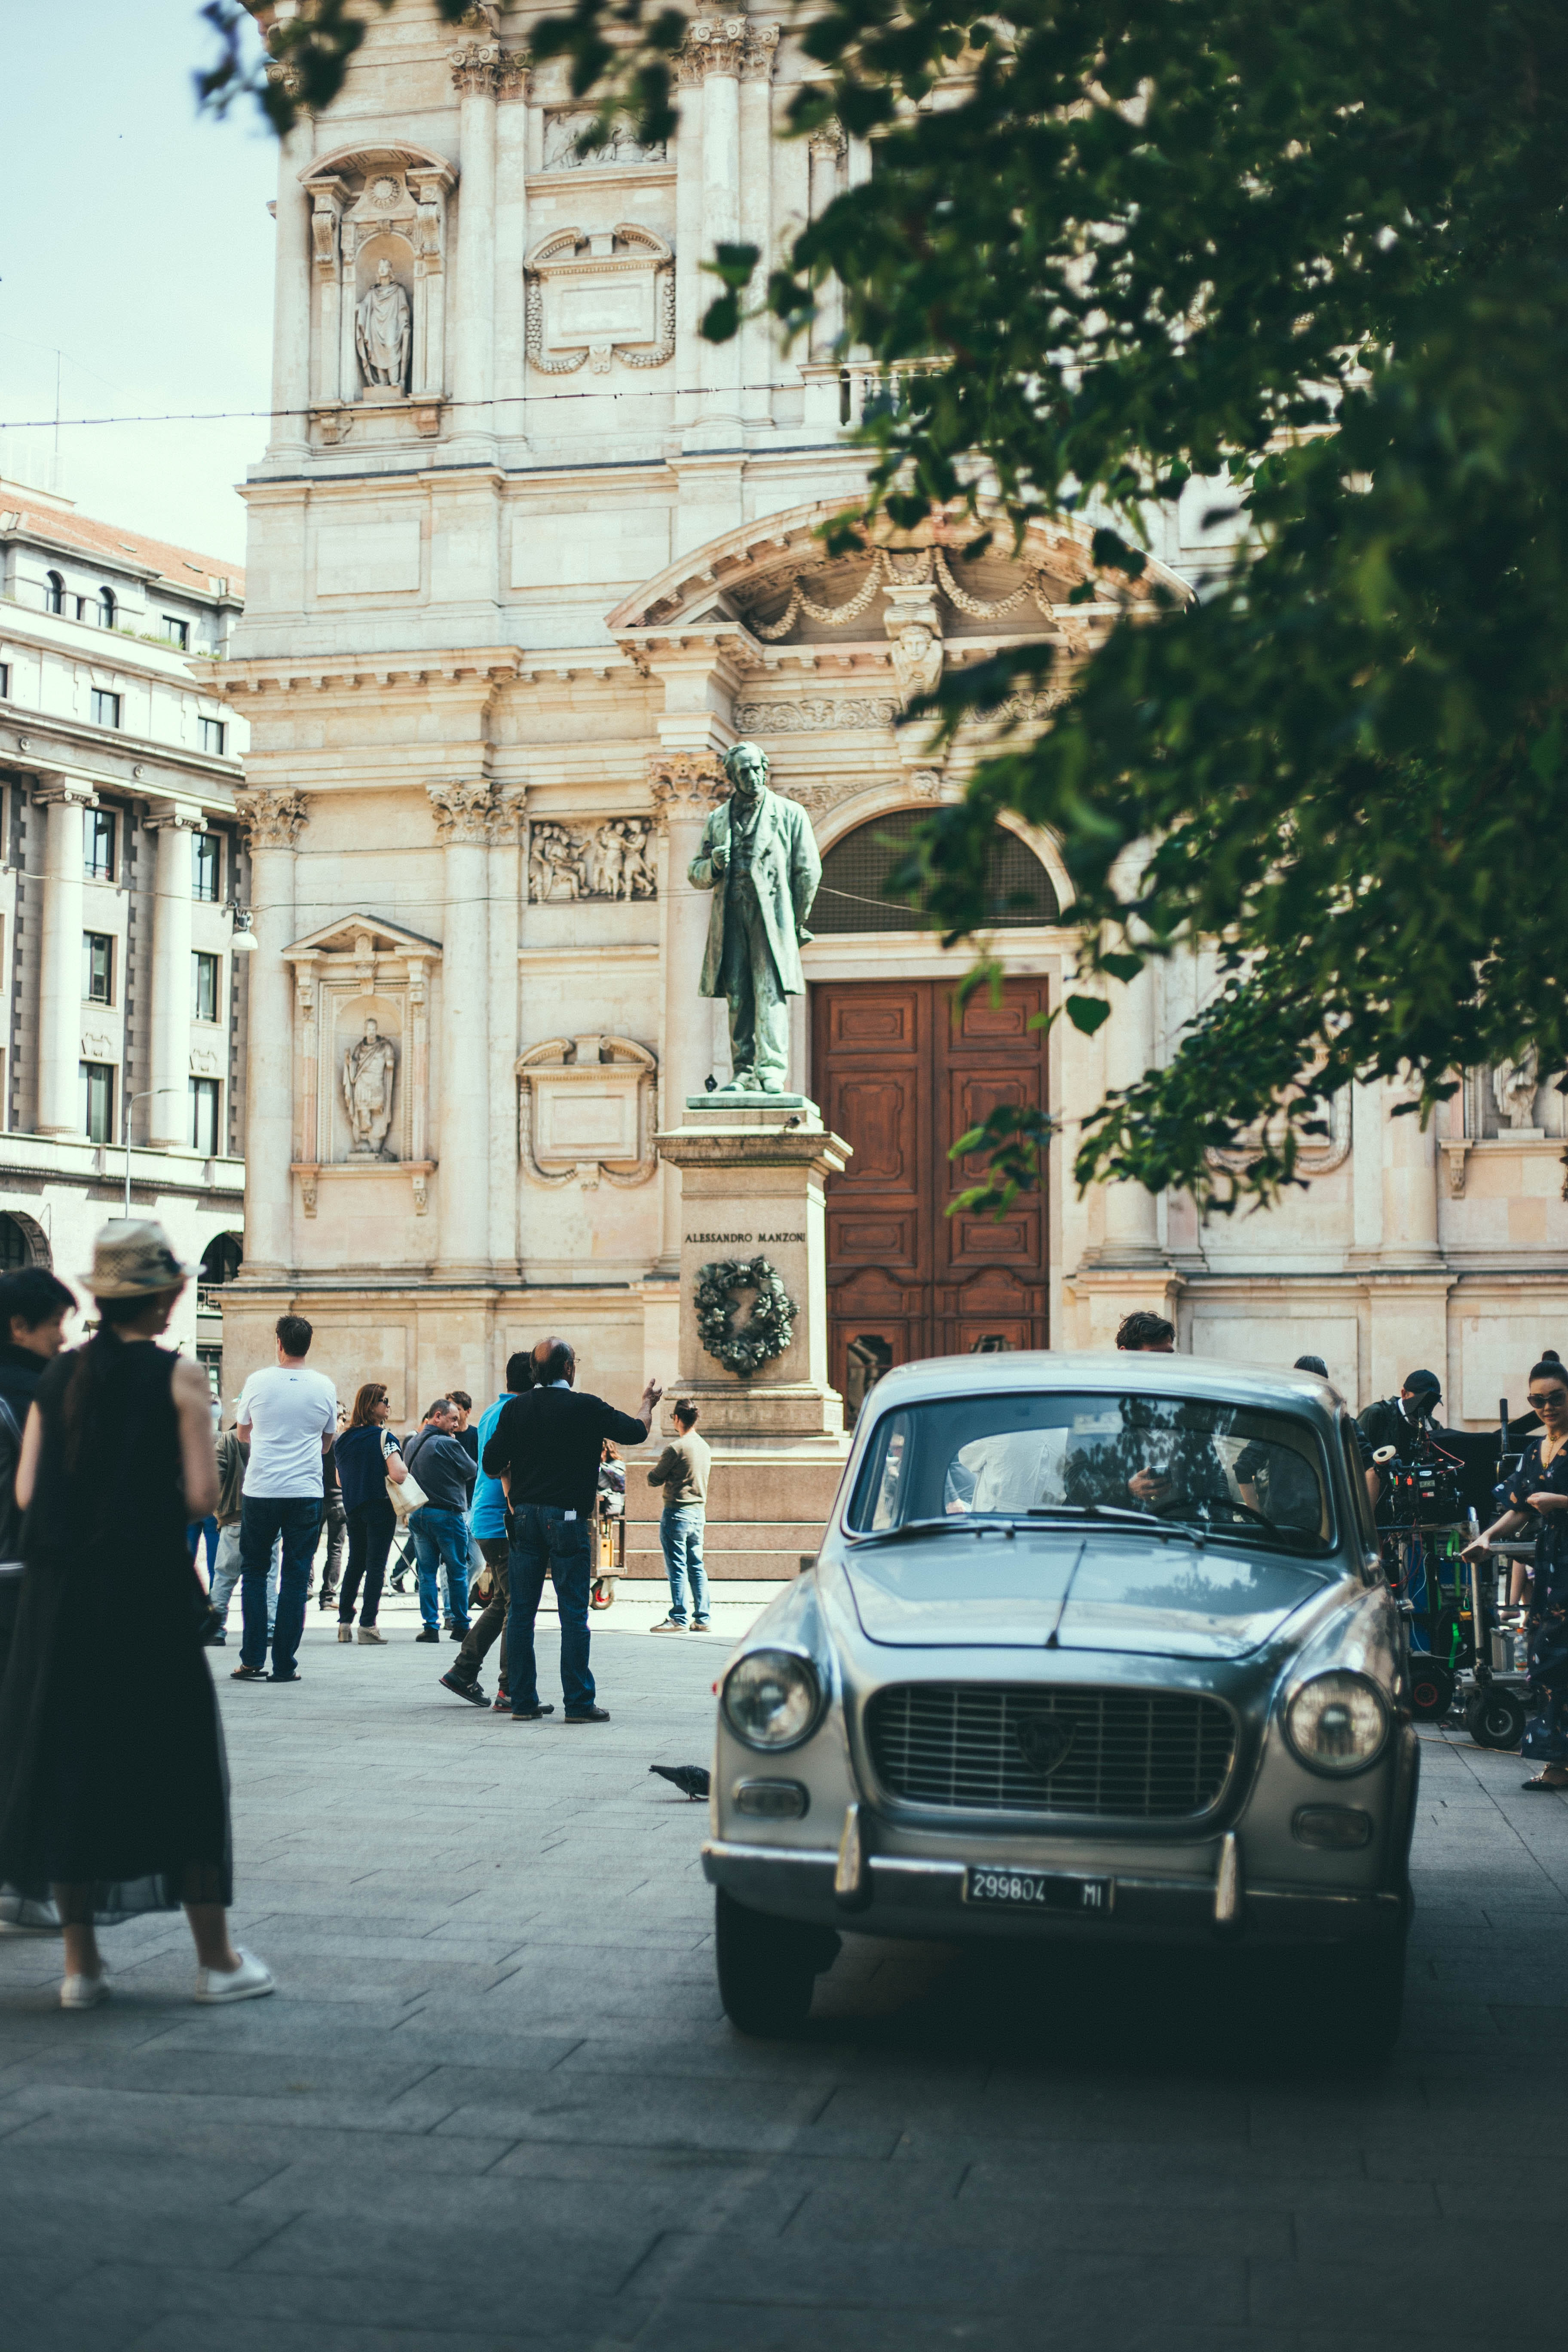 Old vintage white car parked on the crowded square in front of the statue and an old building in Milan